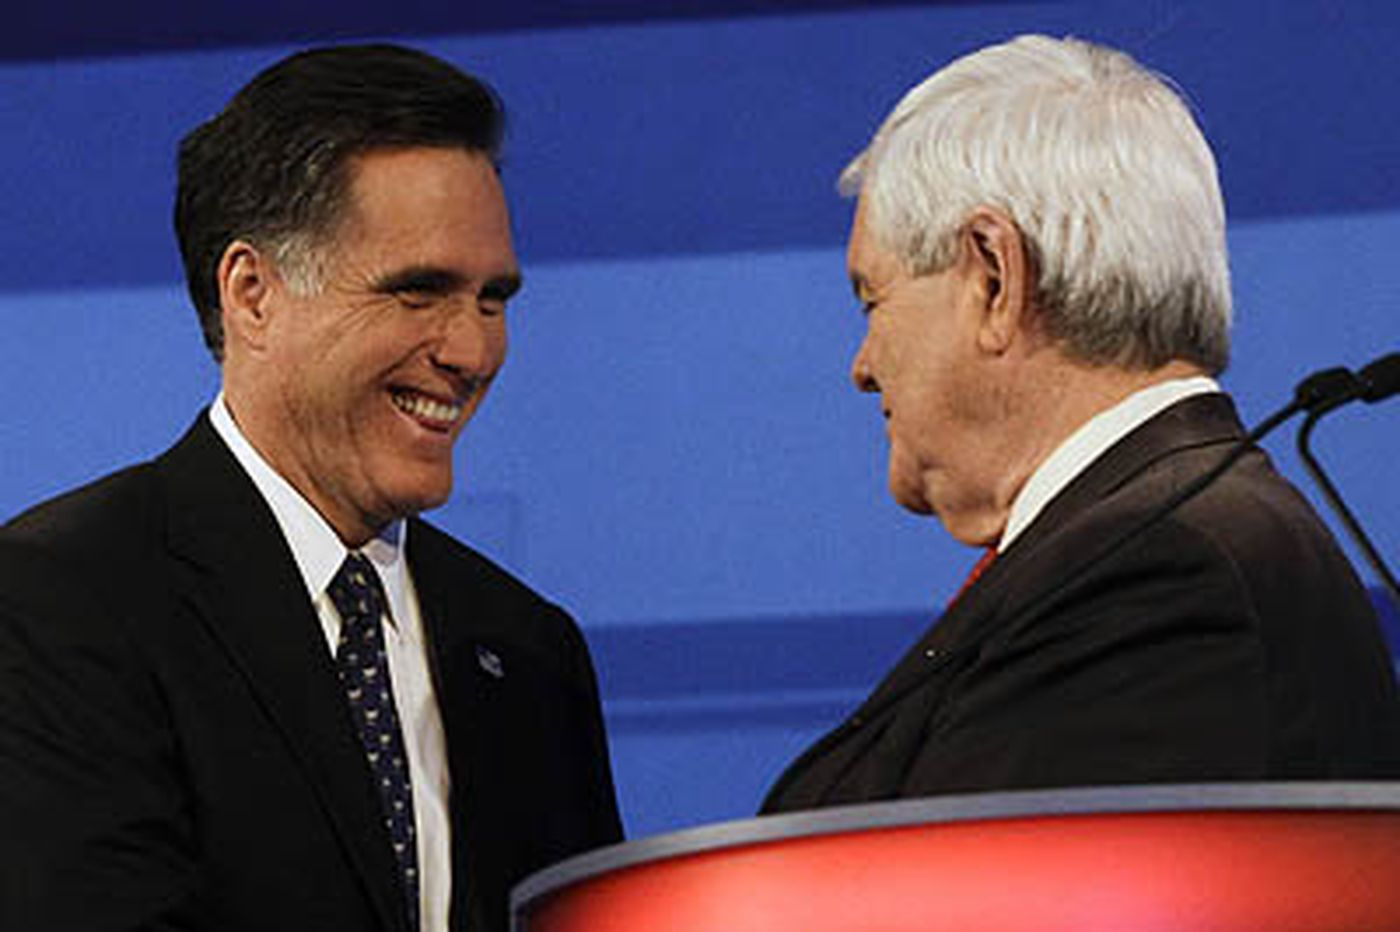 Gingrich's rivals try to keep heat on in final Iowa debate